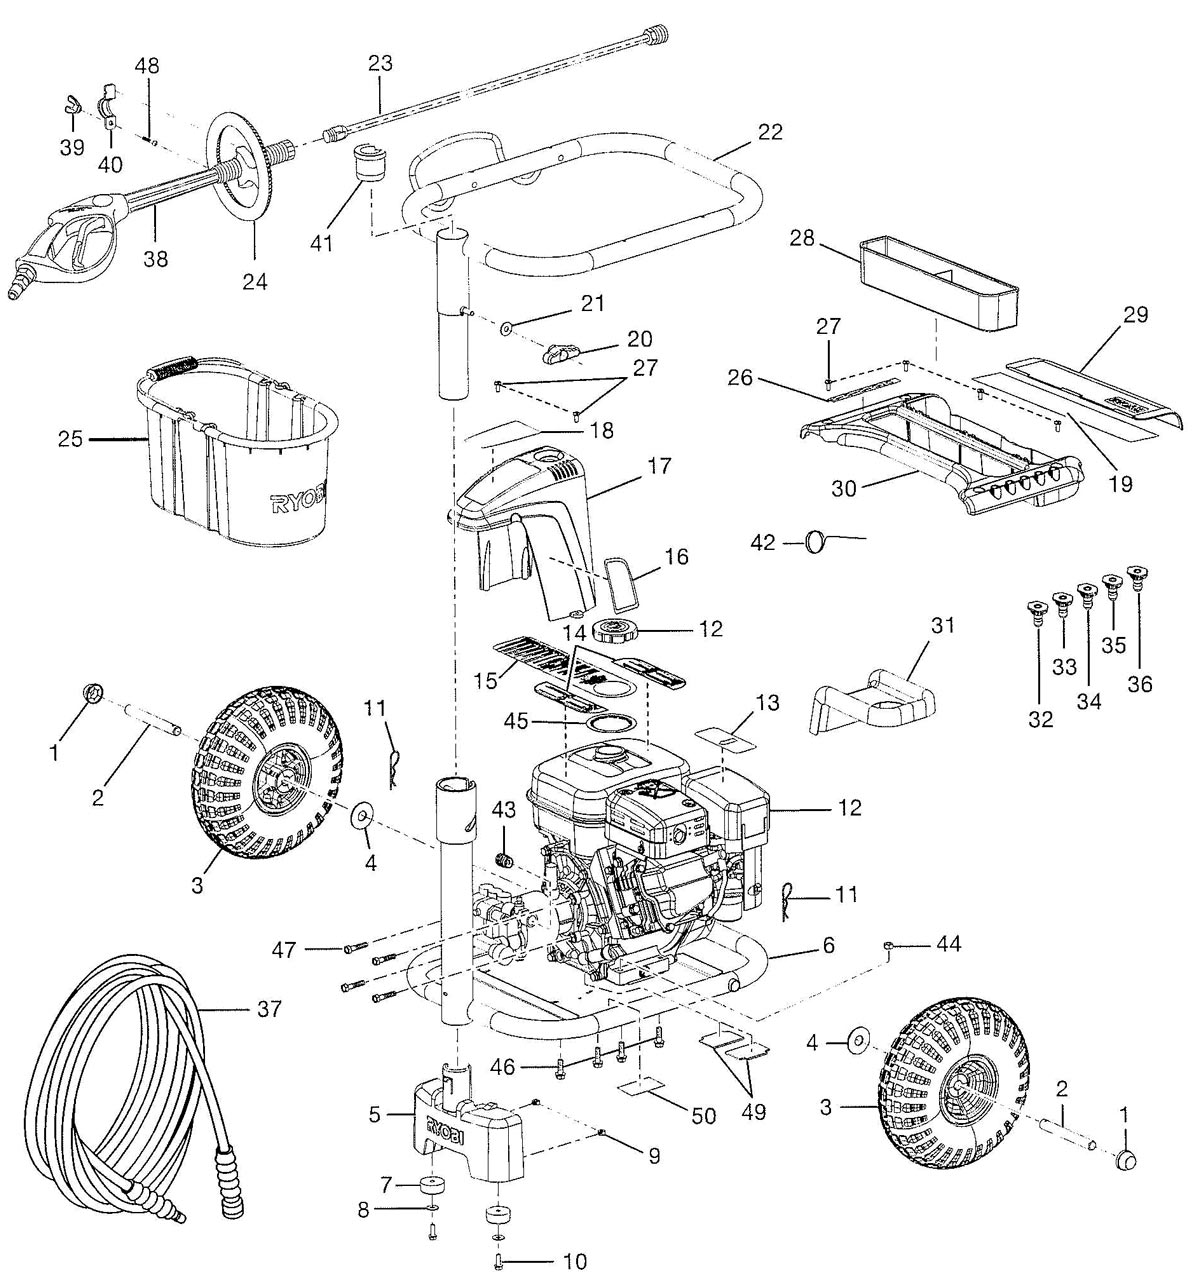 hight resolution of ry80030 ry80030a pressure washer parts schematic